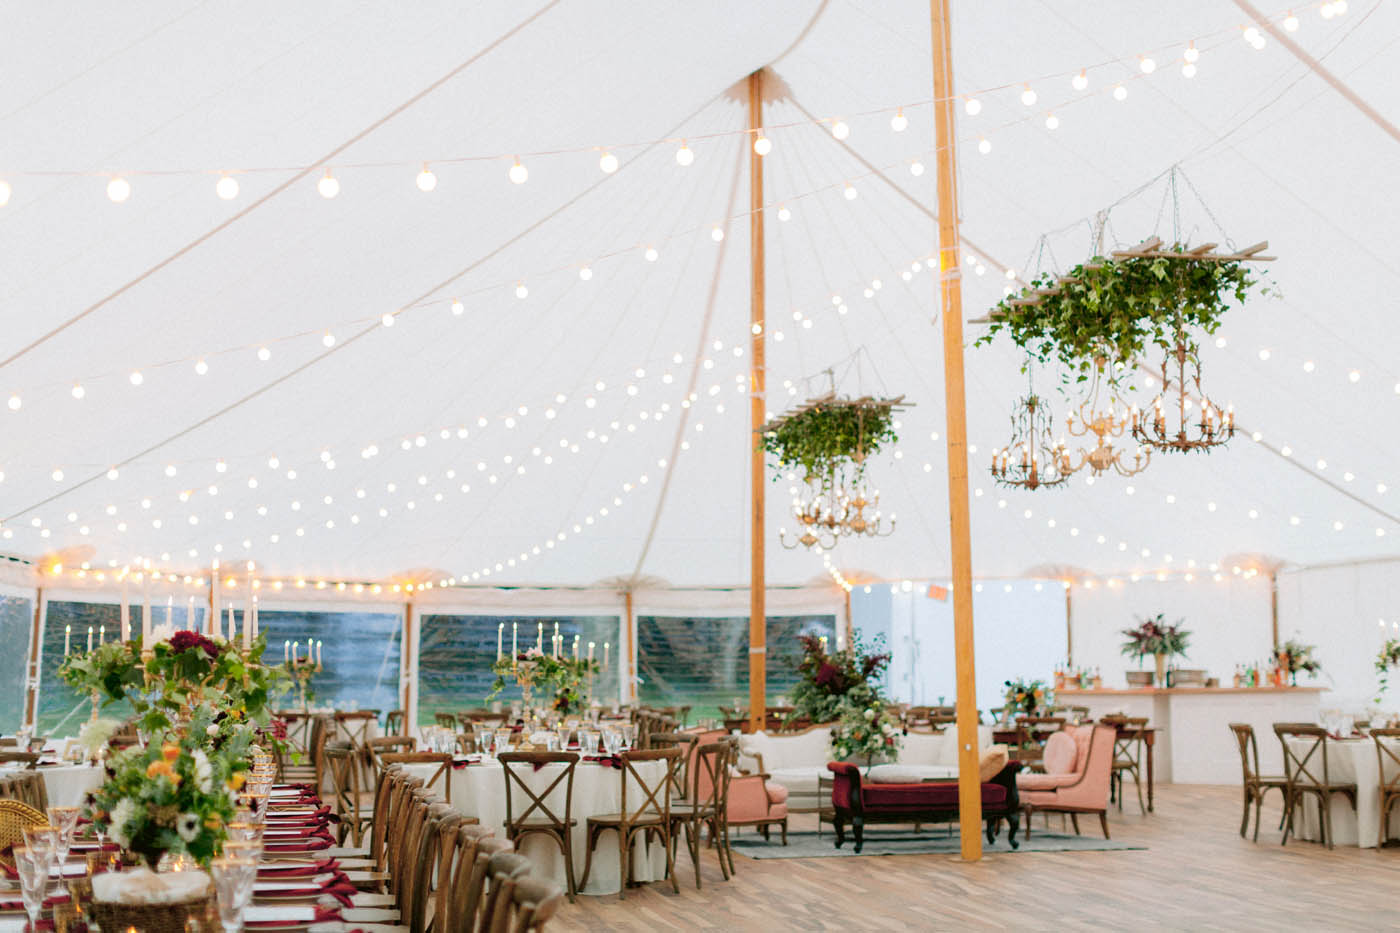 Tent wedding reception in the Berkshires at The Mount